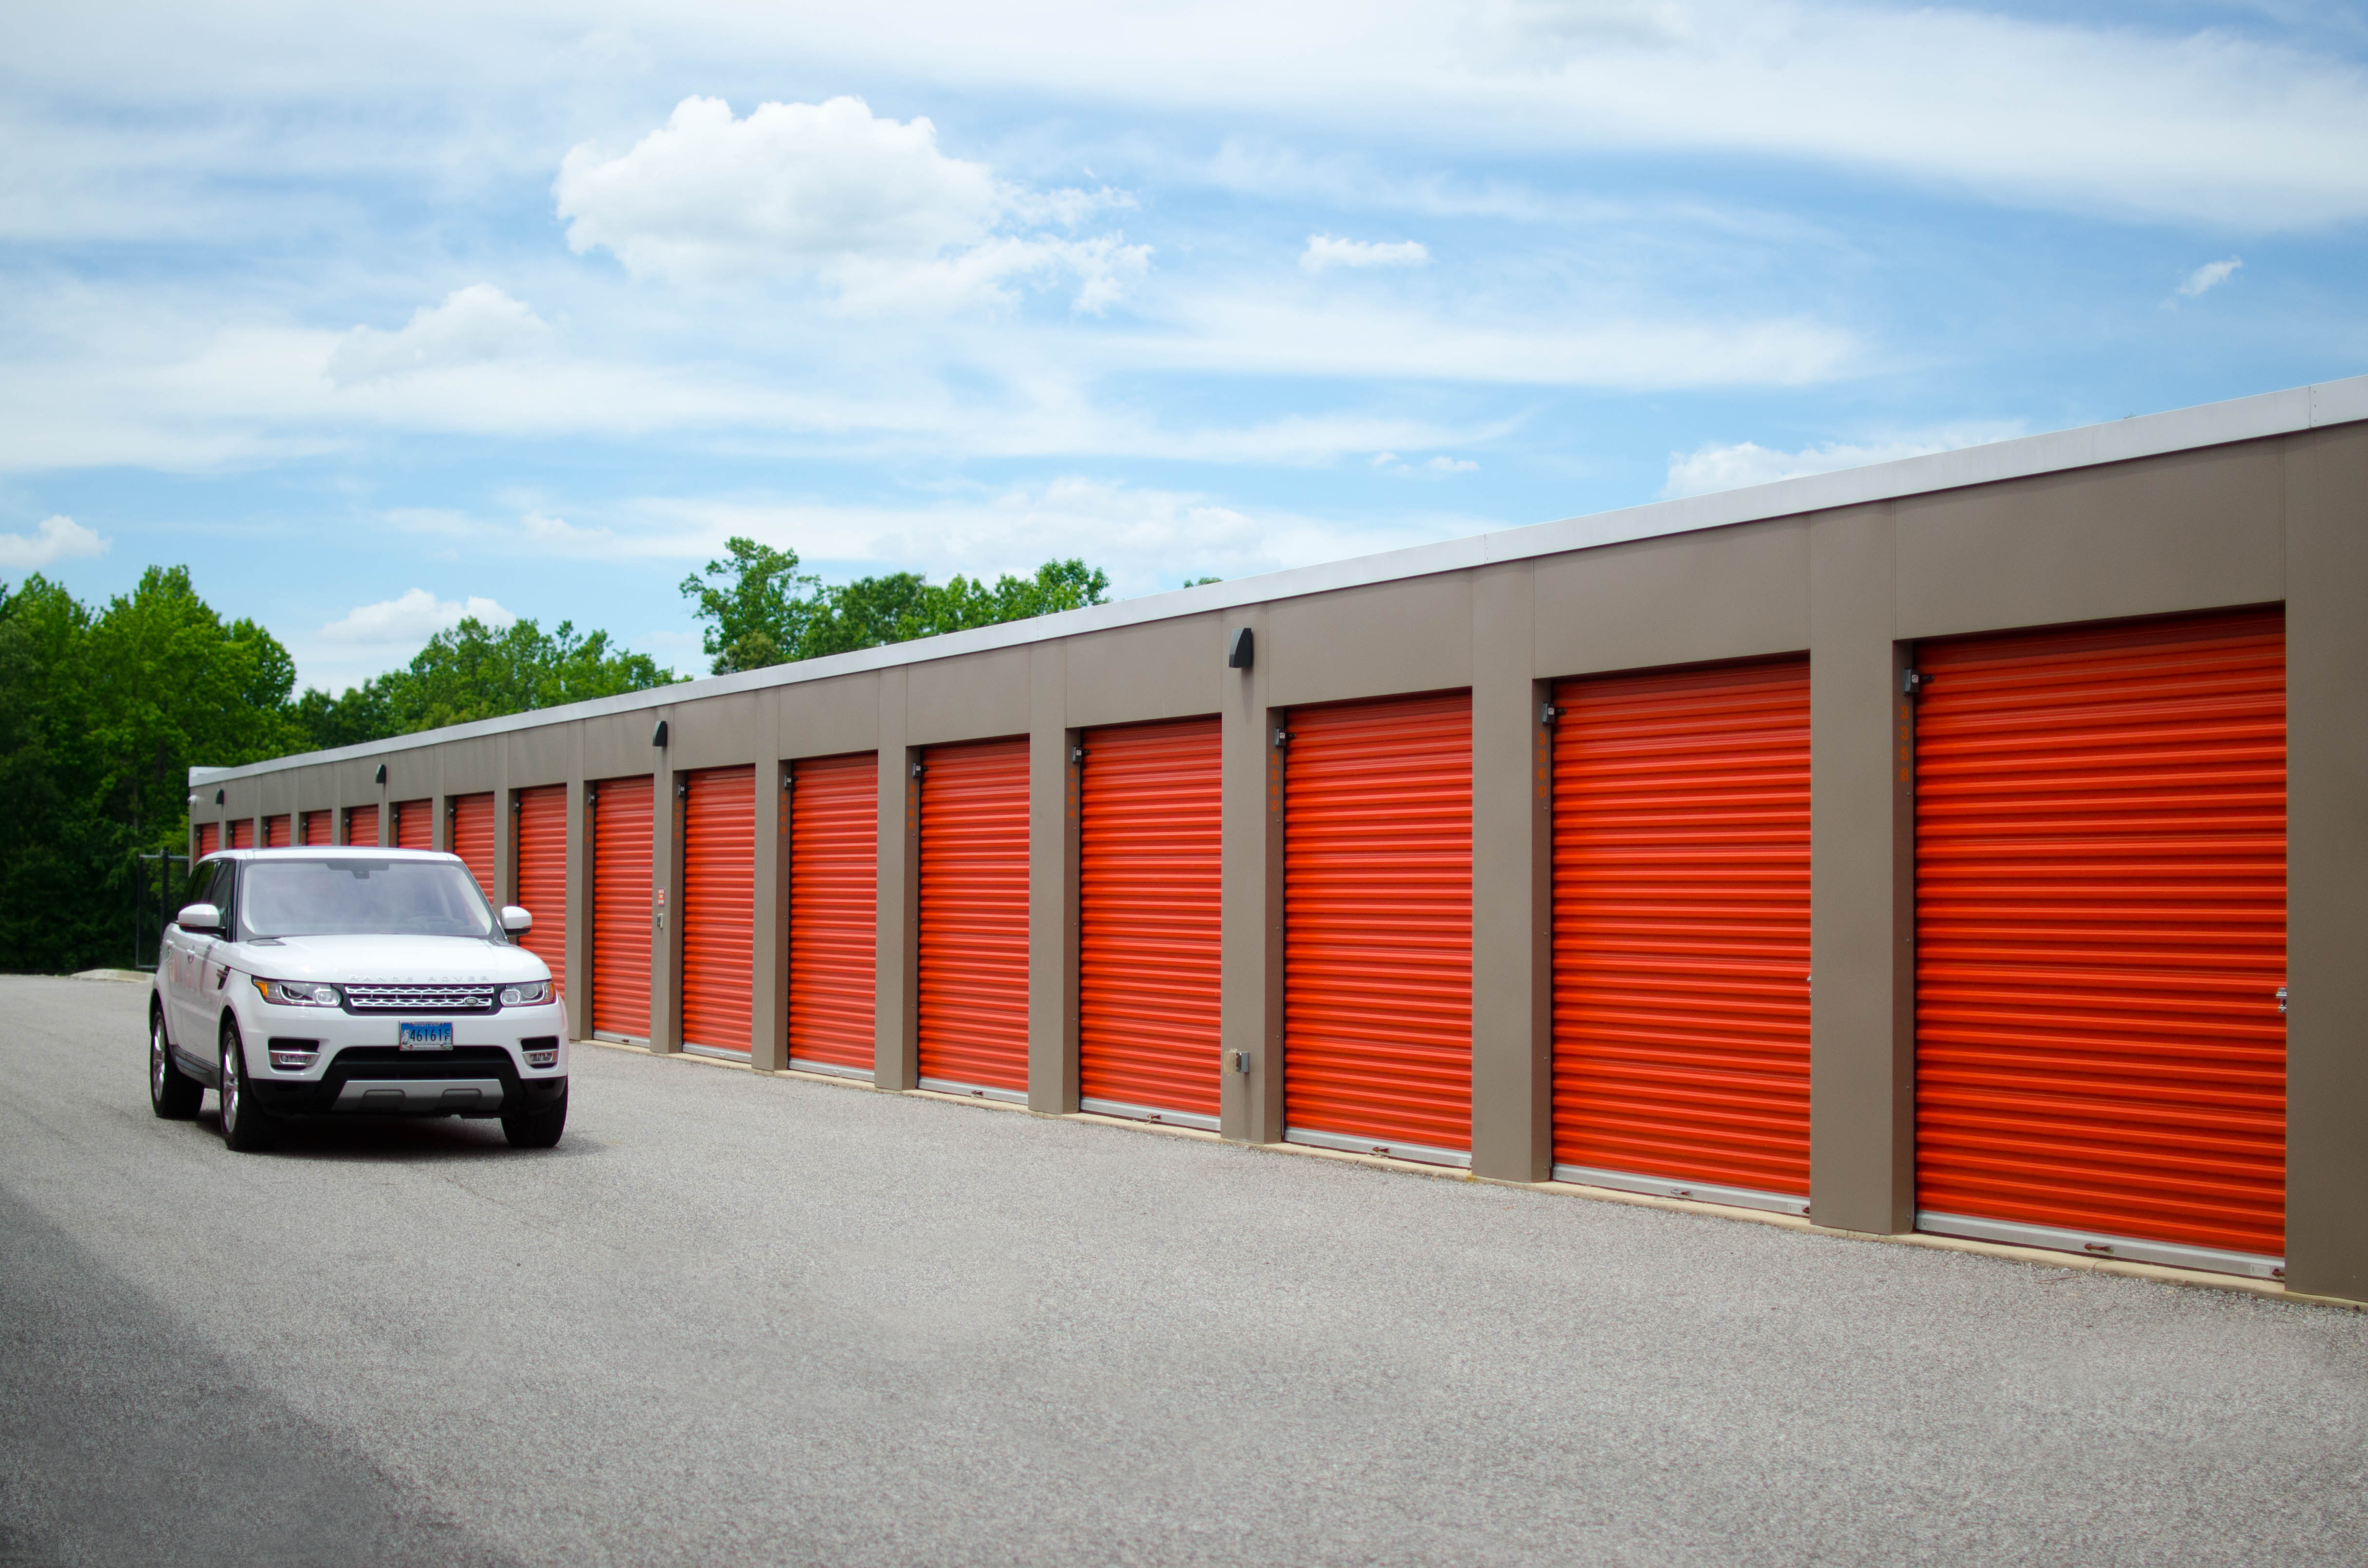 YourSpace Stroage: Self Storage with 8 Locations in Maryland